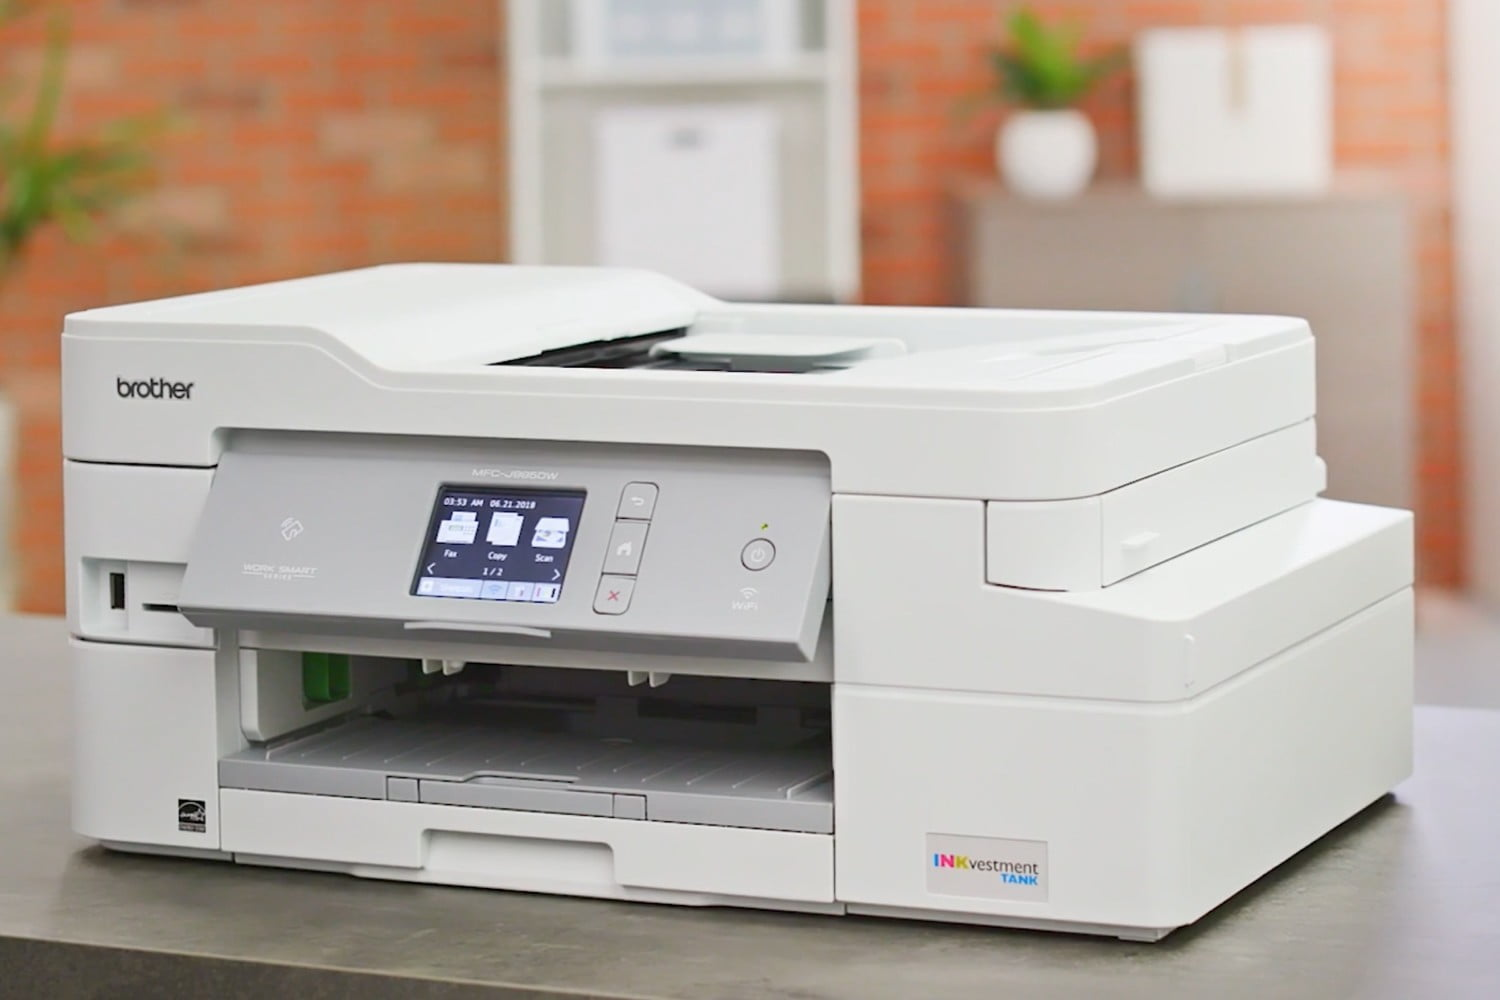 Brother's New Printer Can Go A Year Before Needing an Ink